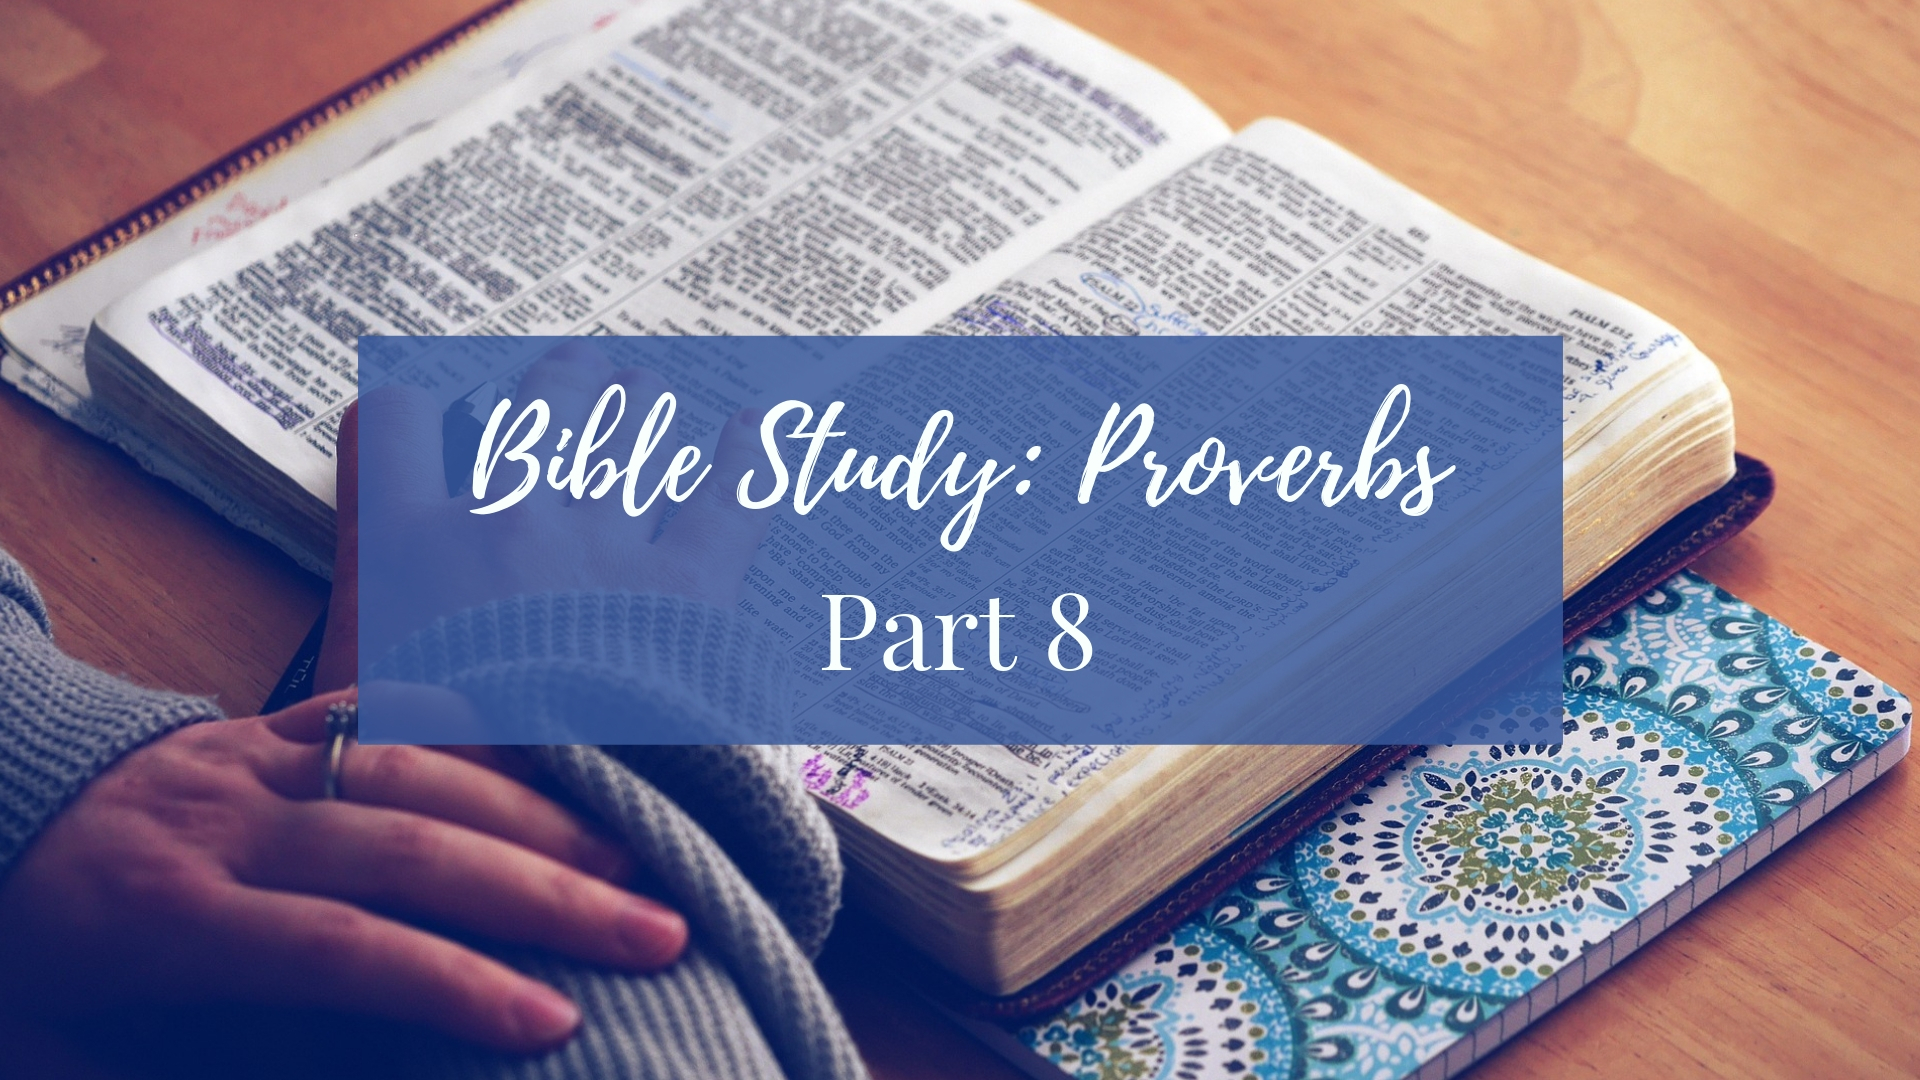 LWS Bible Study Proverbs 8.jpg